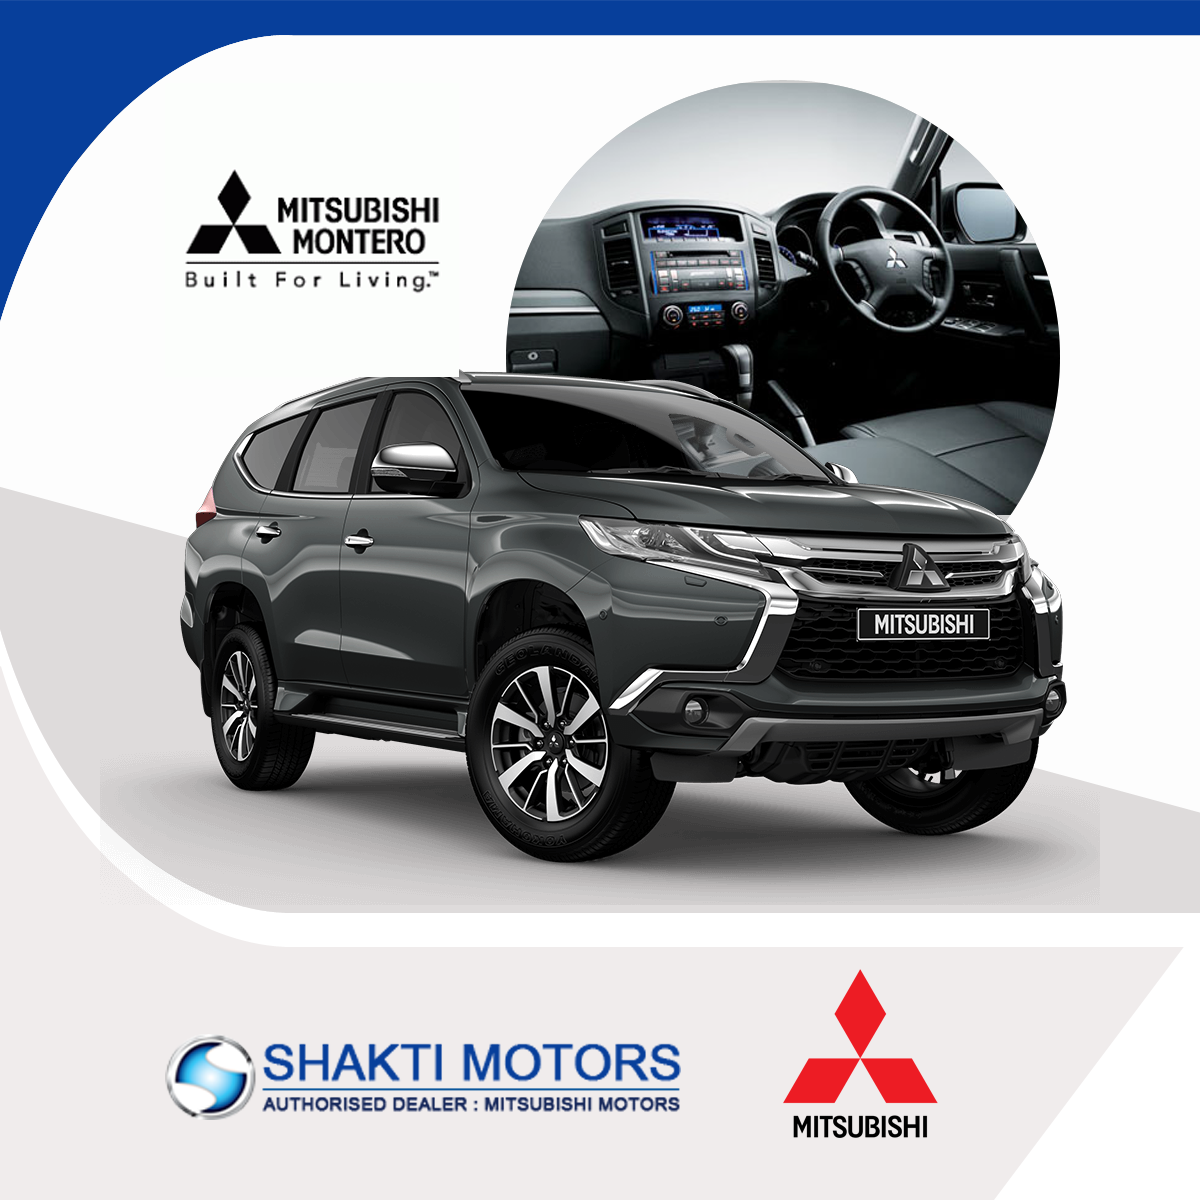 Find this pin and more on mitsubishi montero by shaktimotors